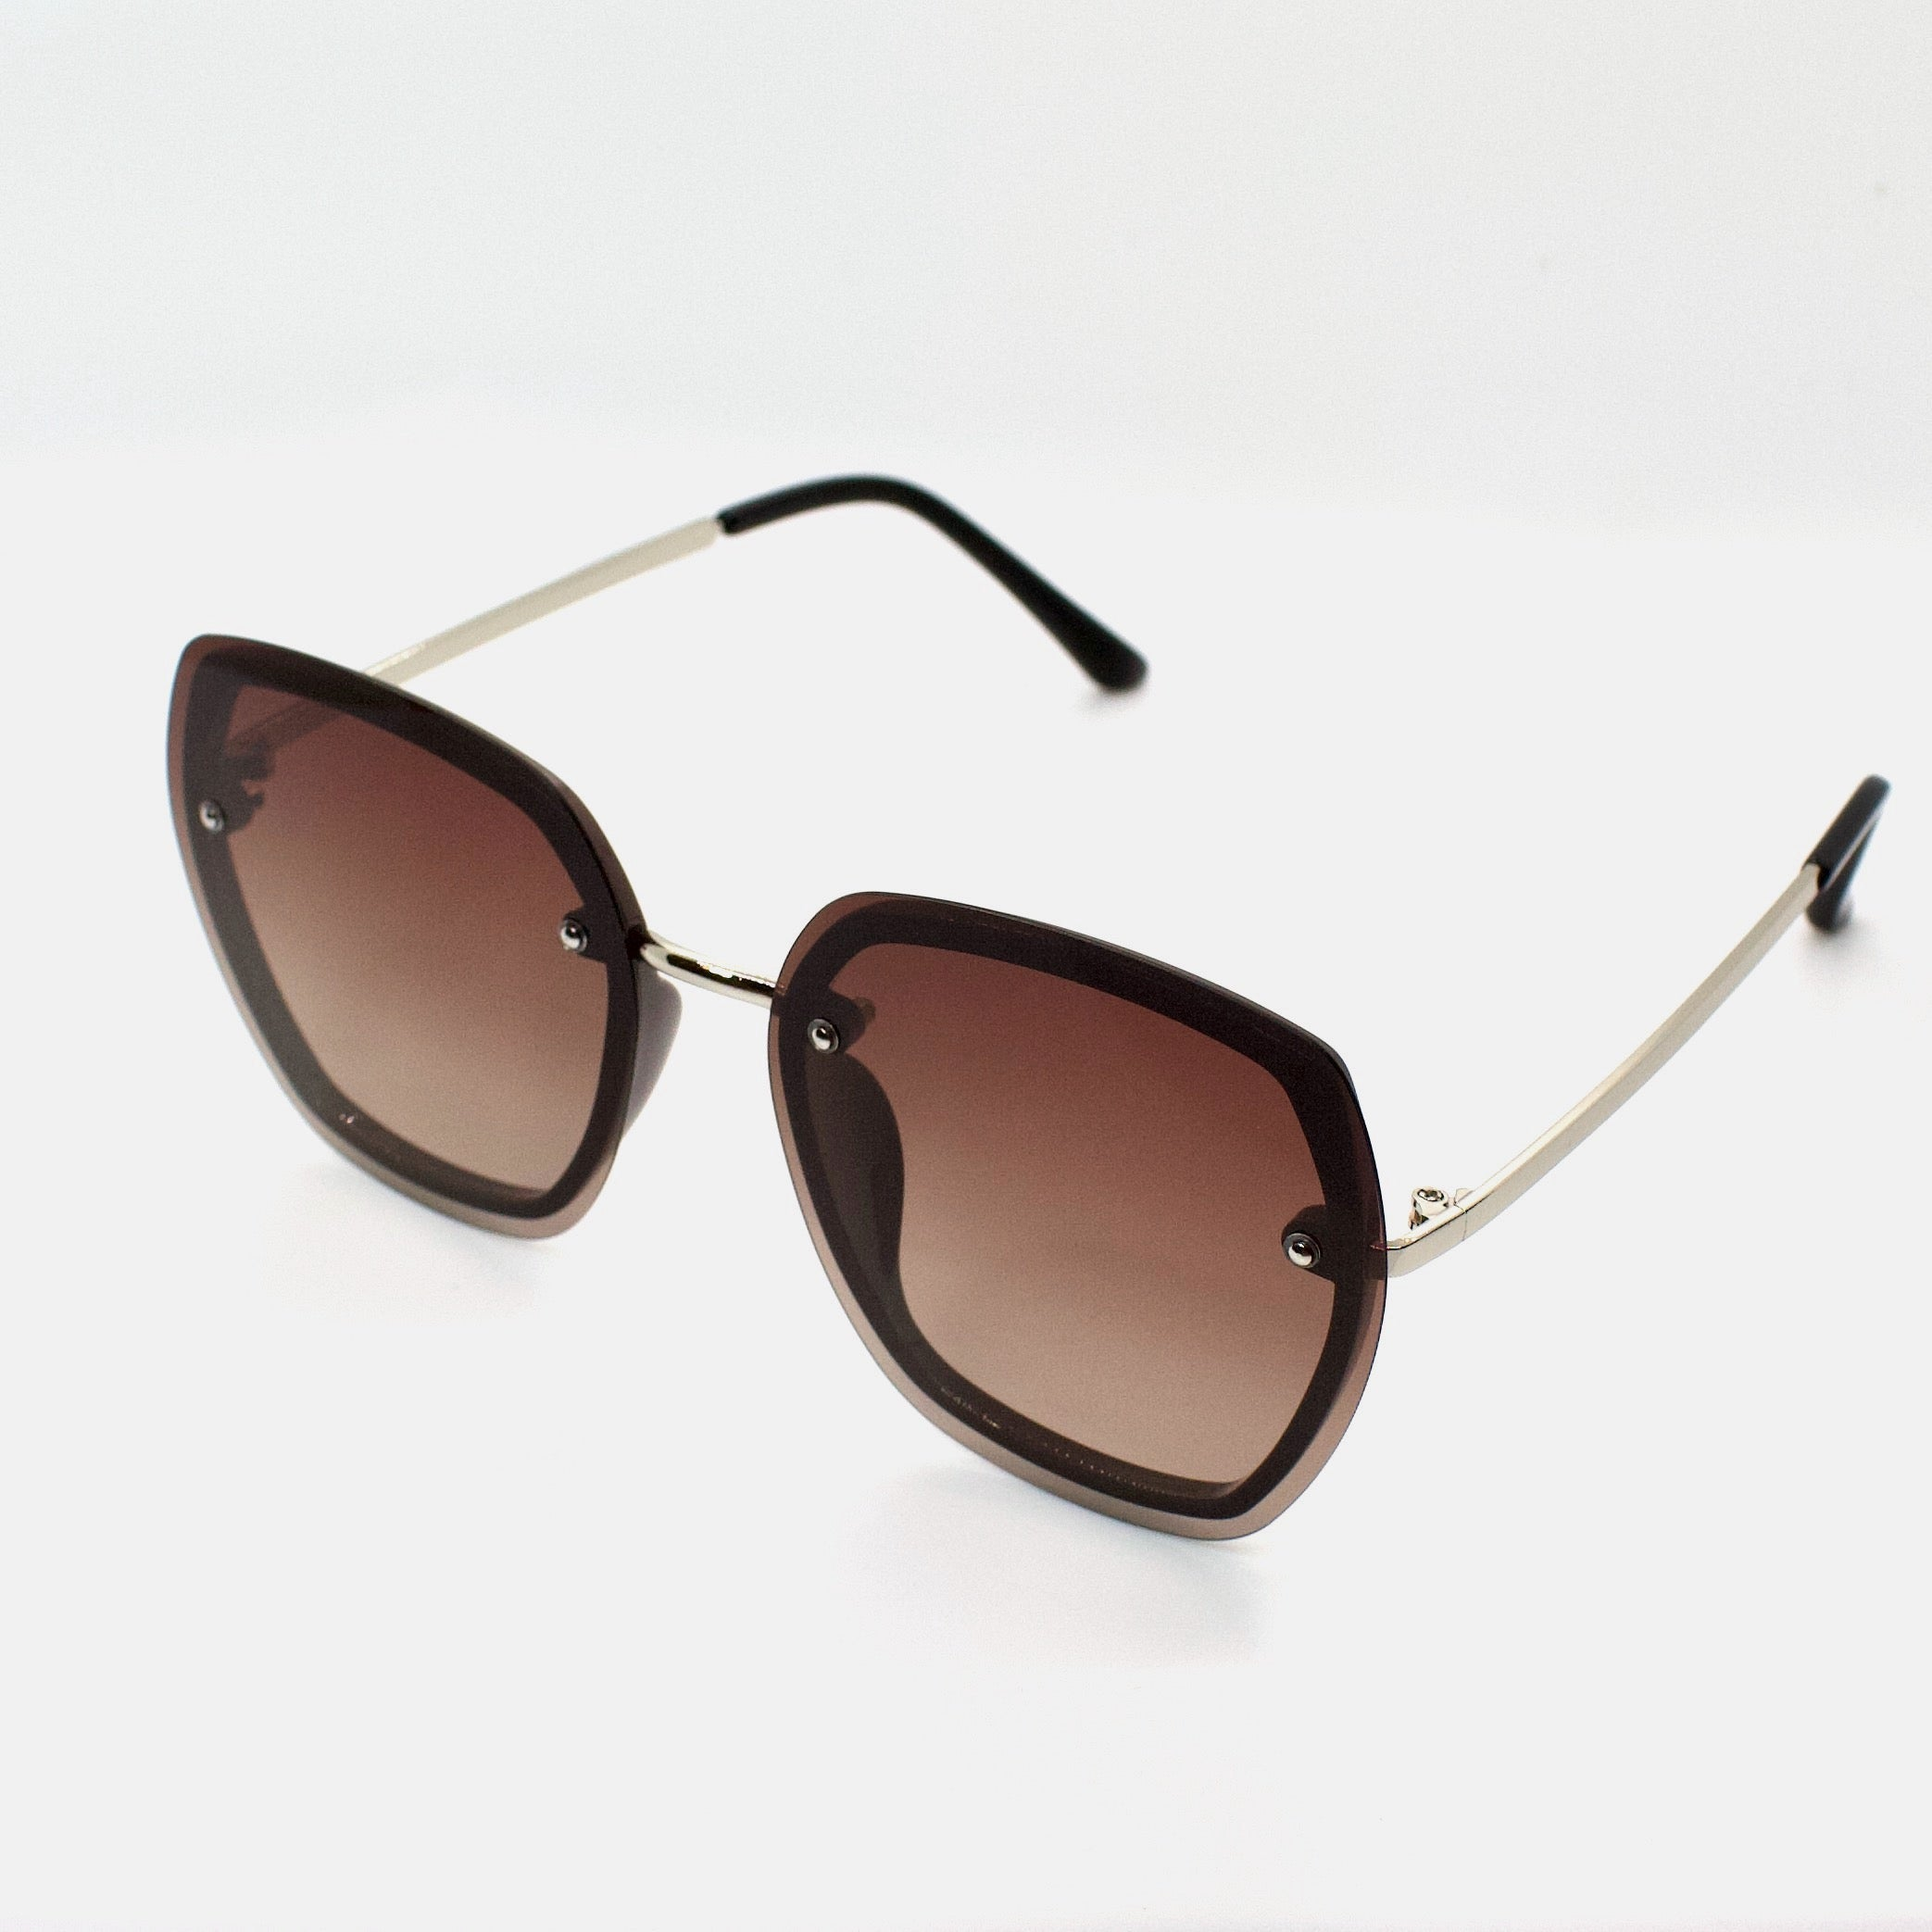 Cece Summer Sunglasses